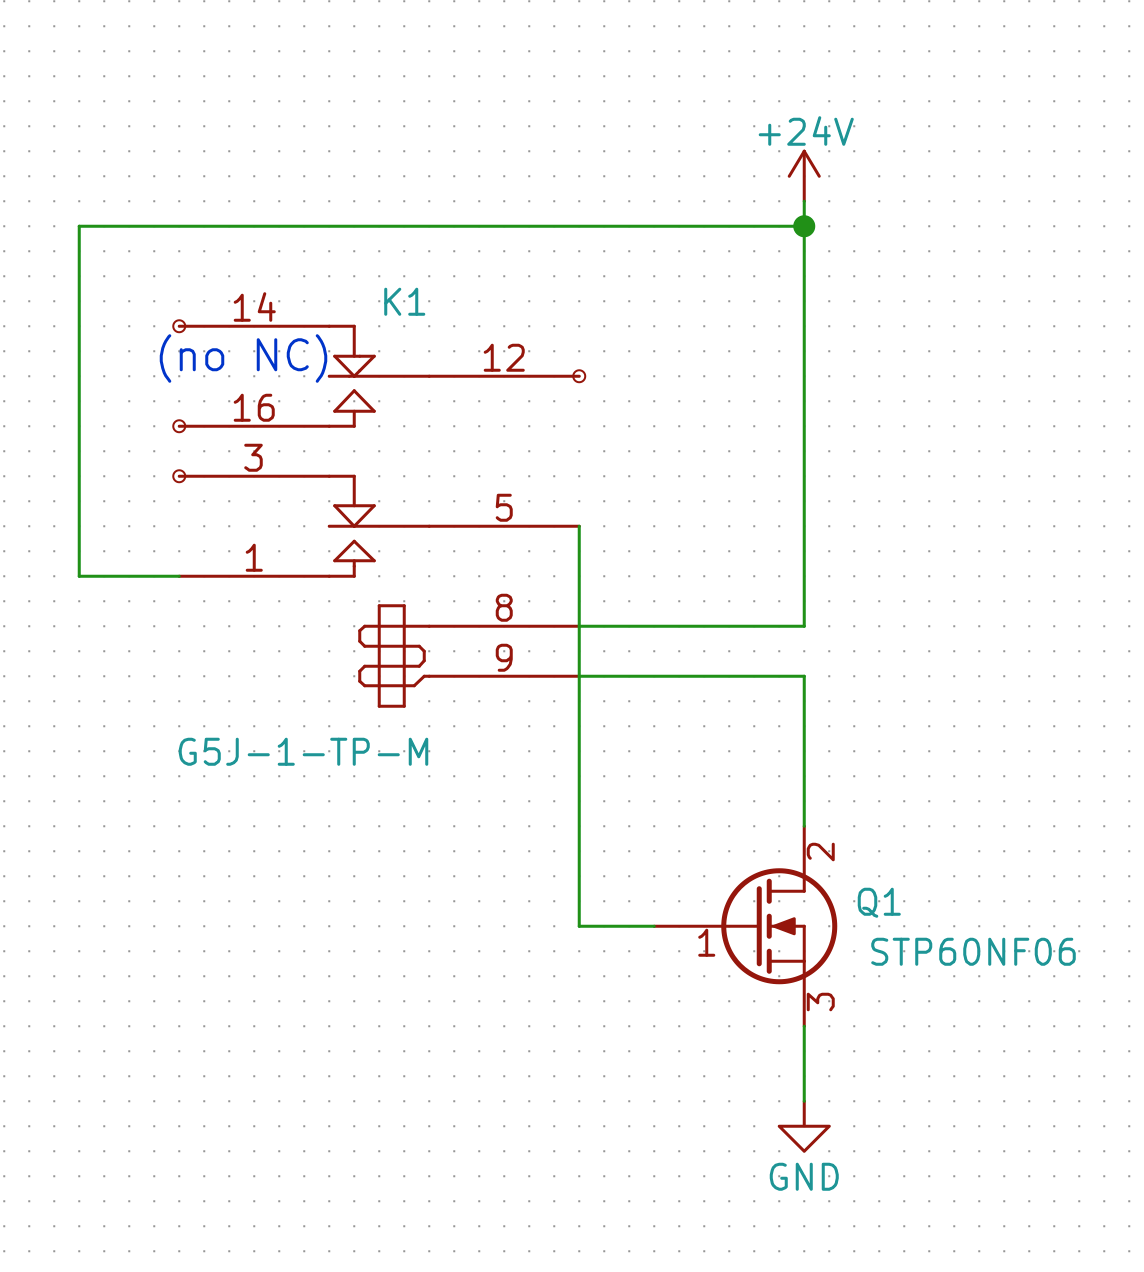 High Voltage Ac Generation Using Relays R X Seger Medium Relay No Nc Contacts When The Closes Note G5j Is A Spst But Kicad Only Had Dpdt Symbol So Thats What Shown Here Gate Pulled